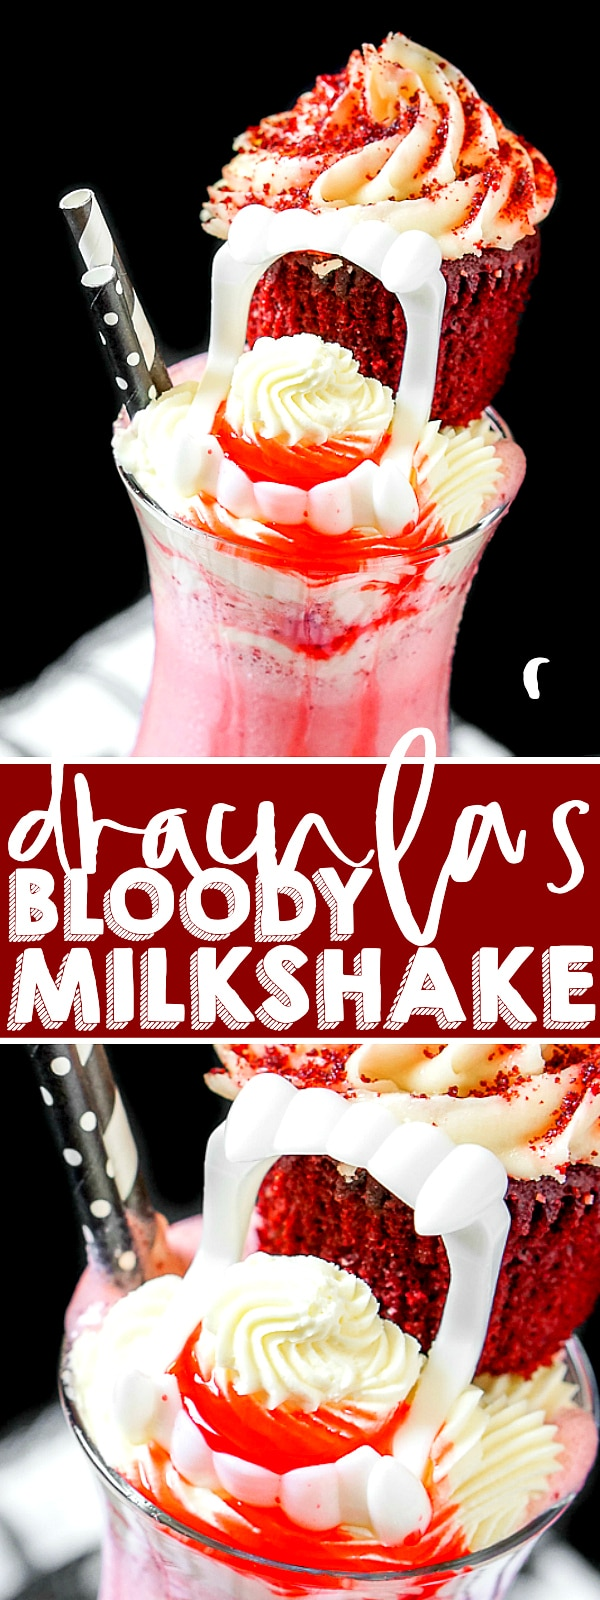 Dracula's Bloody Red Velvet Milkshake recipe is an easy cold treat full of big flavor with a spooky Halloween dessert touch with vampire teeth! | THE LOVE NERDS #milkshakerecipe #redvelvetrecipe #halloweendessert